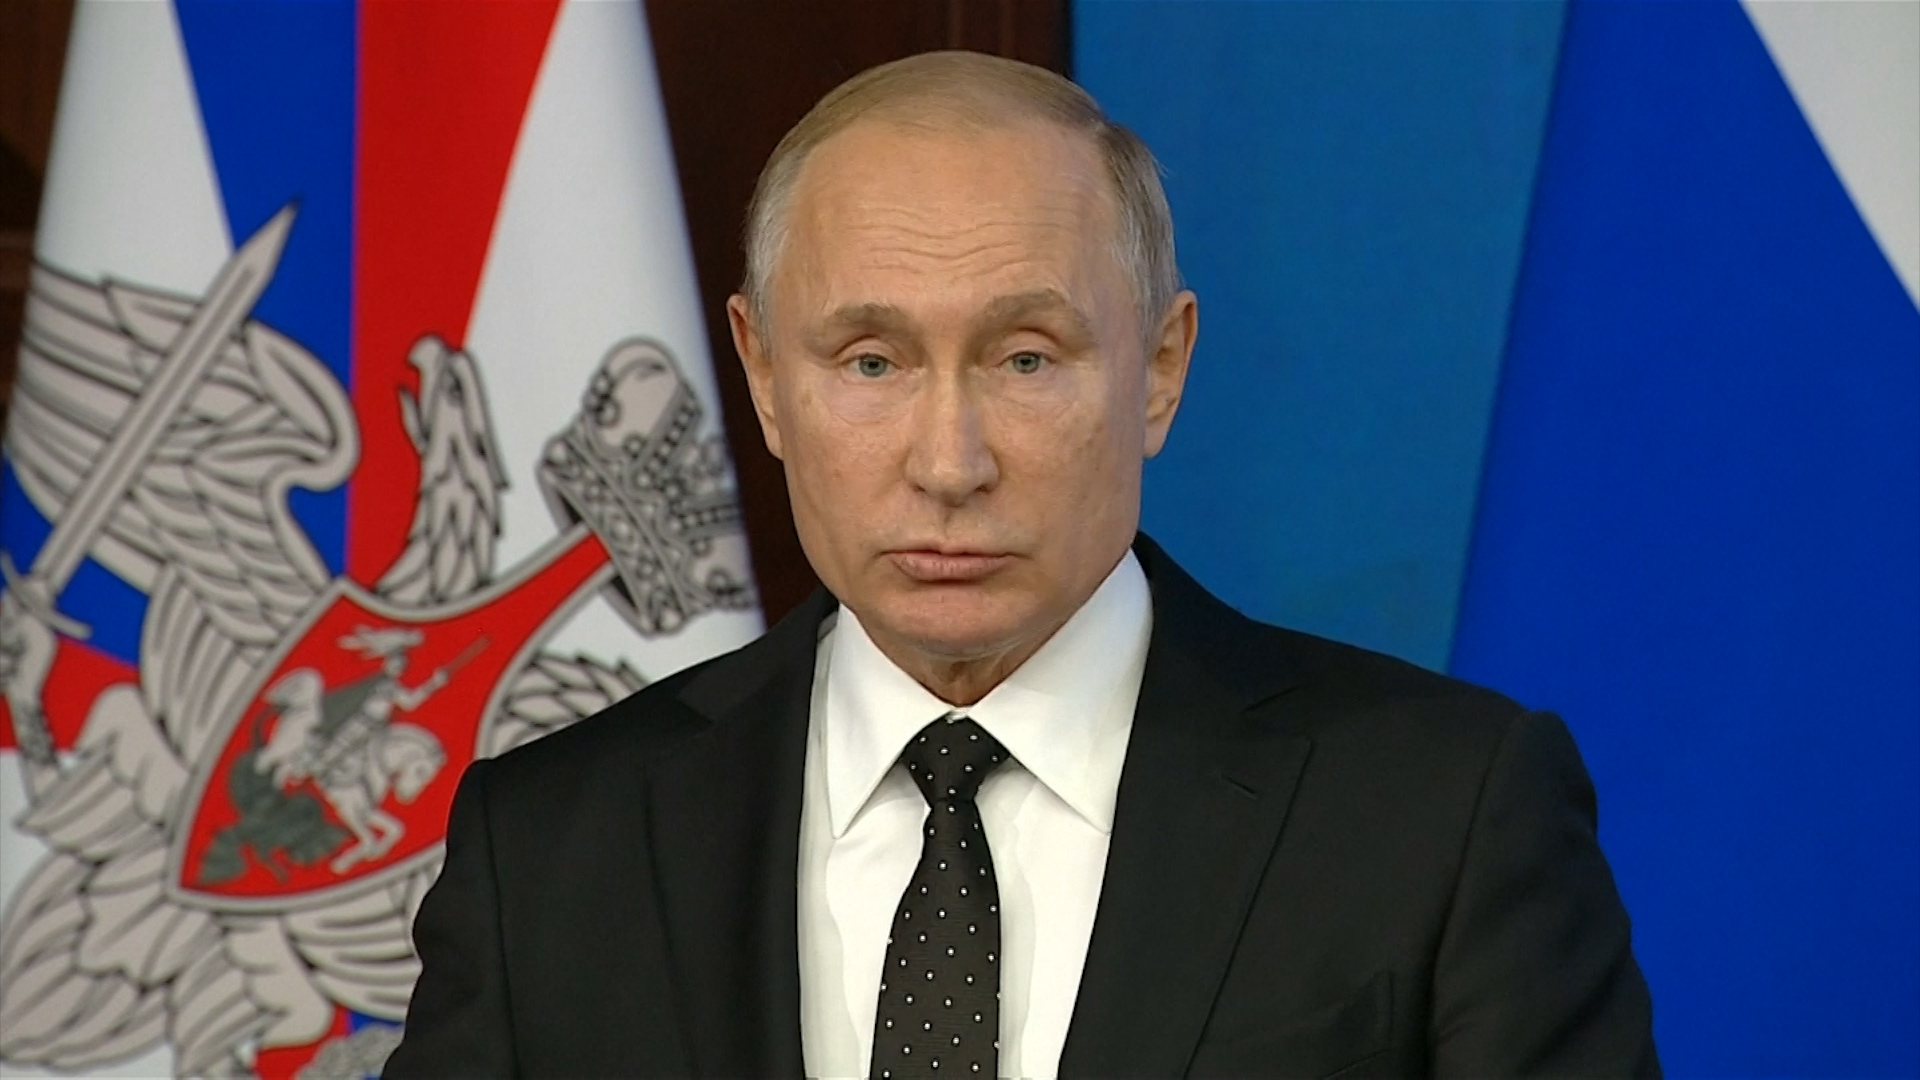 Putin says open to third nations joining nuclear treaty